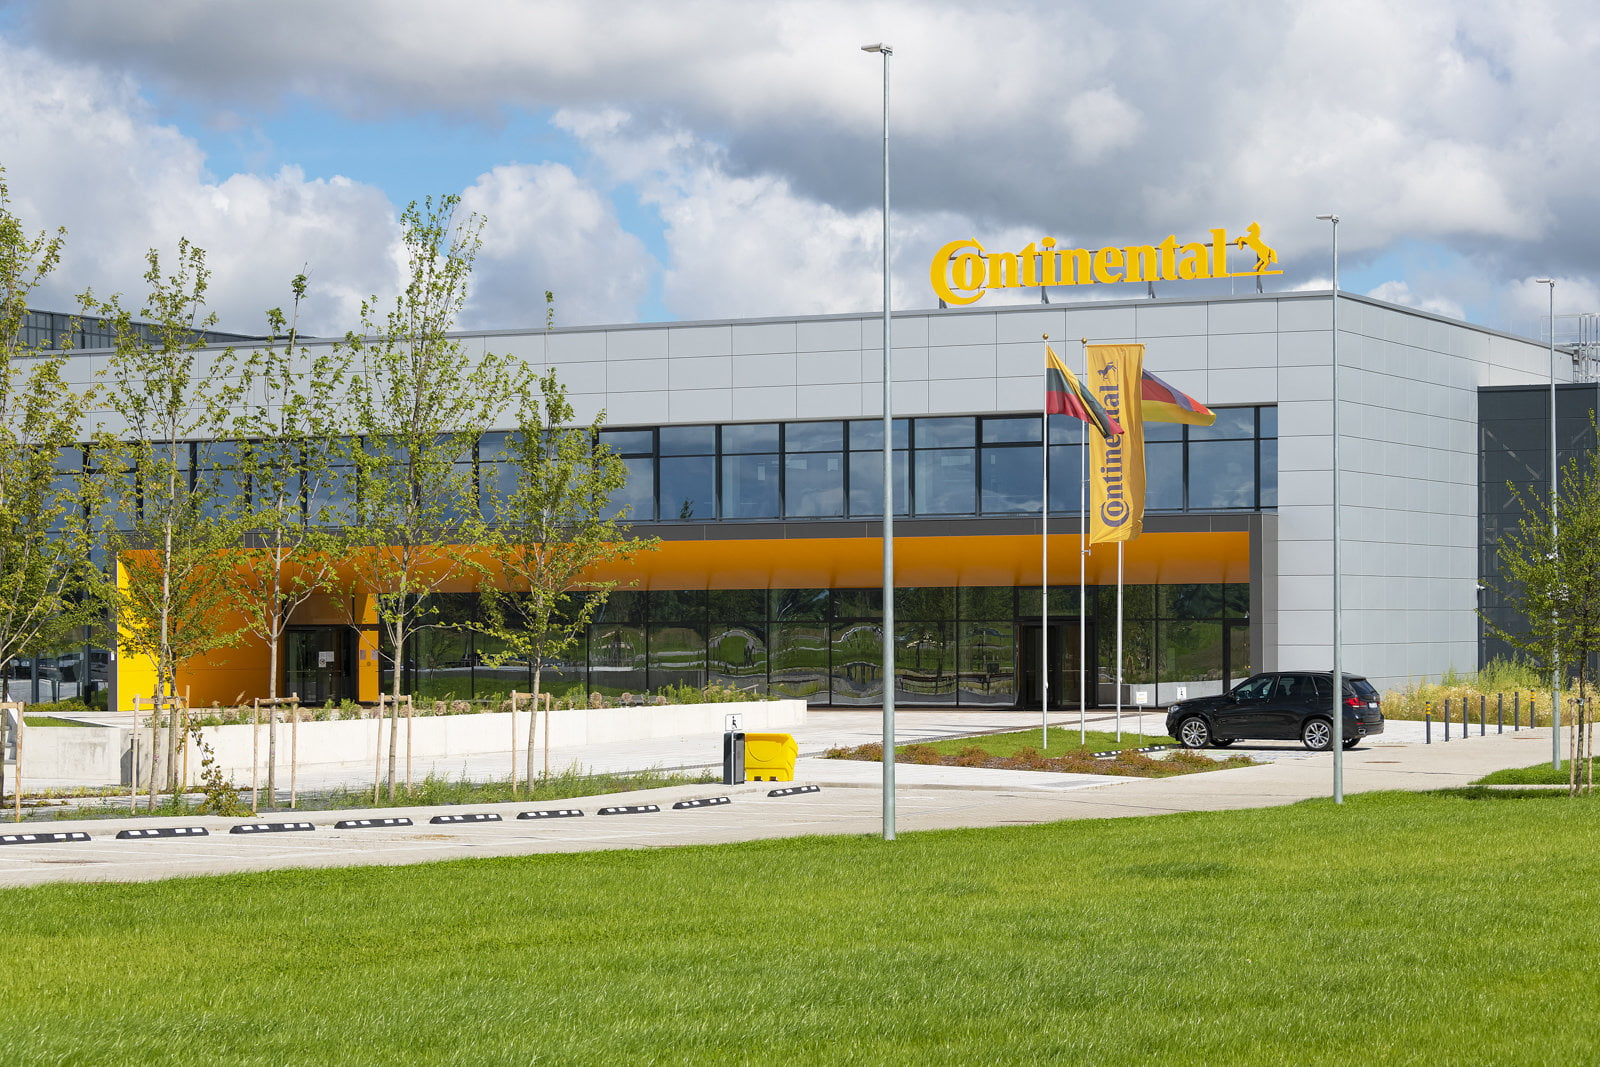 continental gamykla 60647753a8297